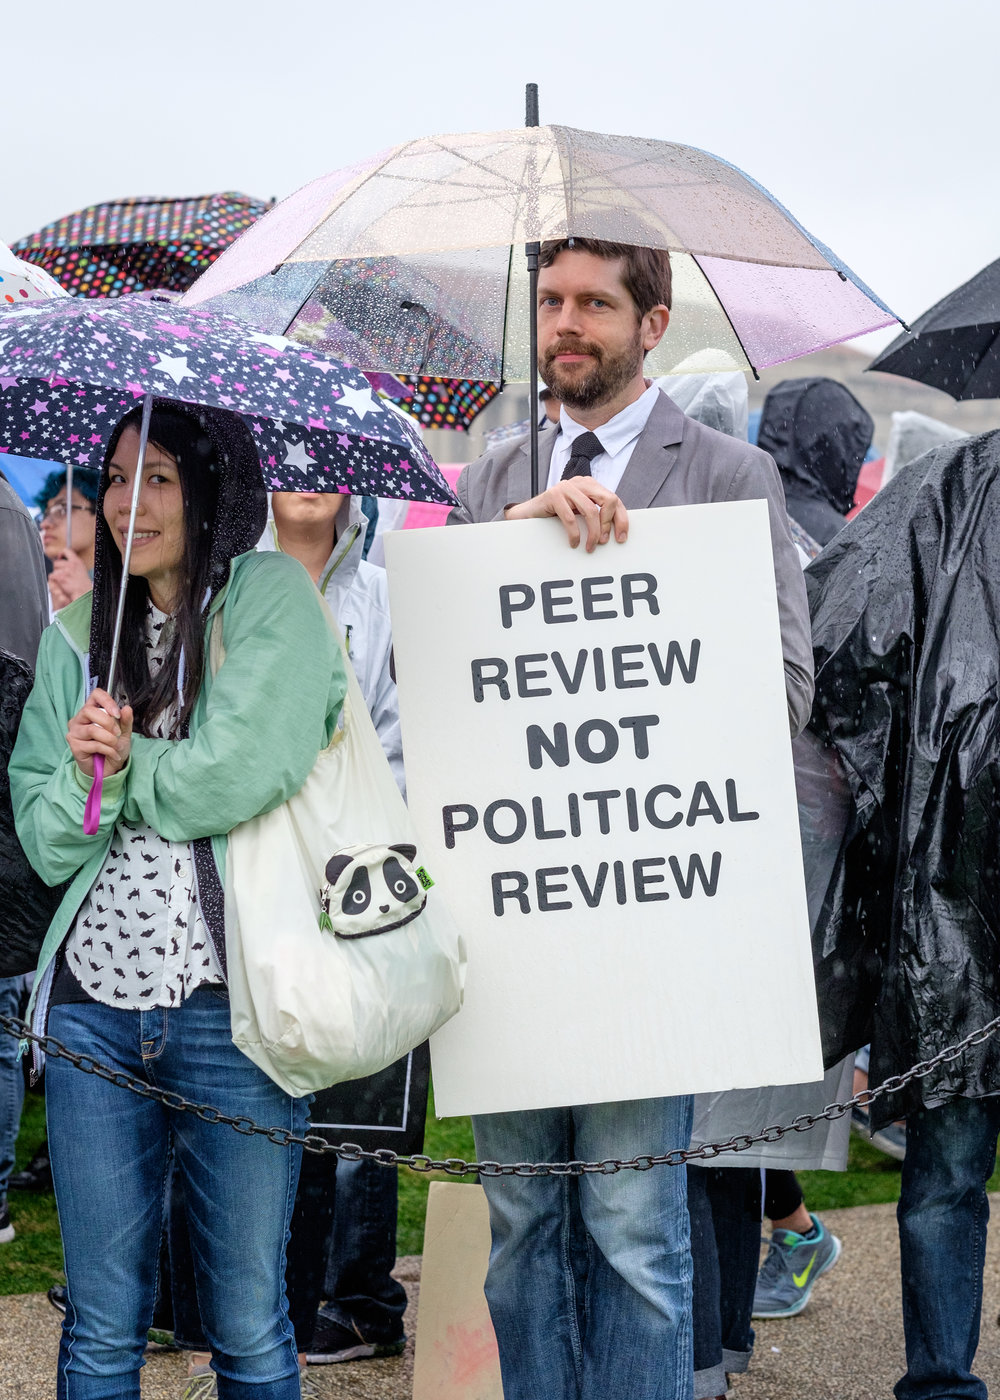 "Mike Myers of Arlington, VA is seen at the March for Science on the National Mall on Earth Day, Saturday, April 22, 2017 in Washington, DC. He attended the march ""to support non-partisan research and to keep politics out of the process of discovery."" Mike has worked in government funded research, most recently with DARPA on the engineering side. He joins thousands who have gathered in the nation's capital with scientists and science supporters across the world who are participating in the first-ever global march for science. More than 600 locations world-wide held March for Science events."